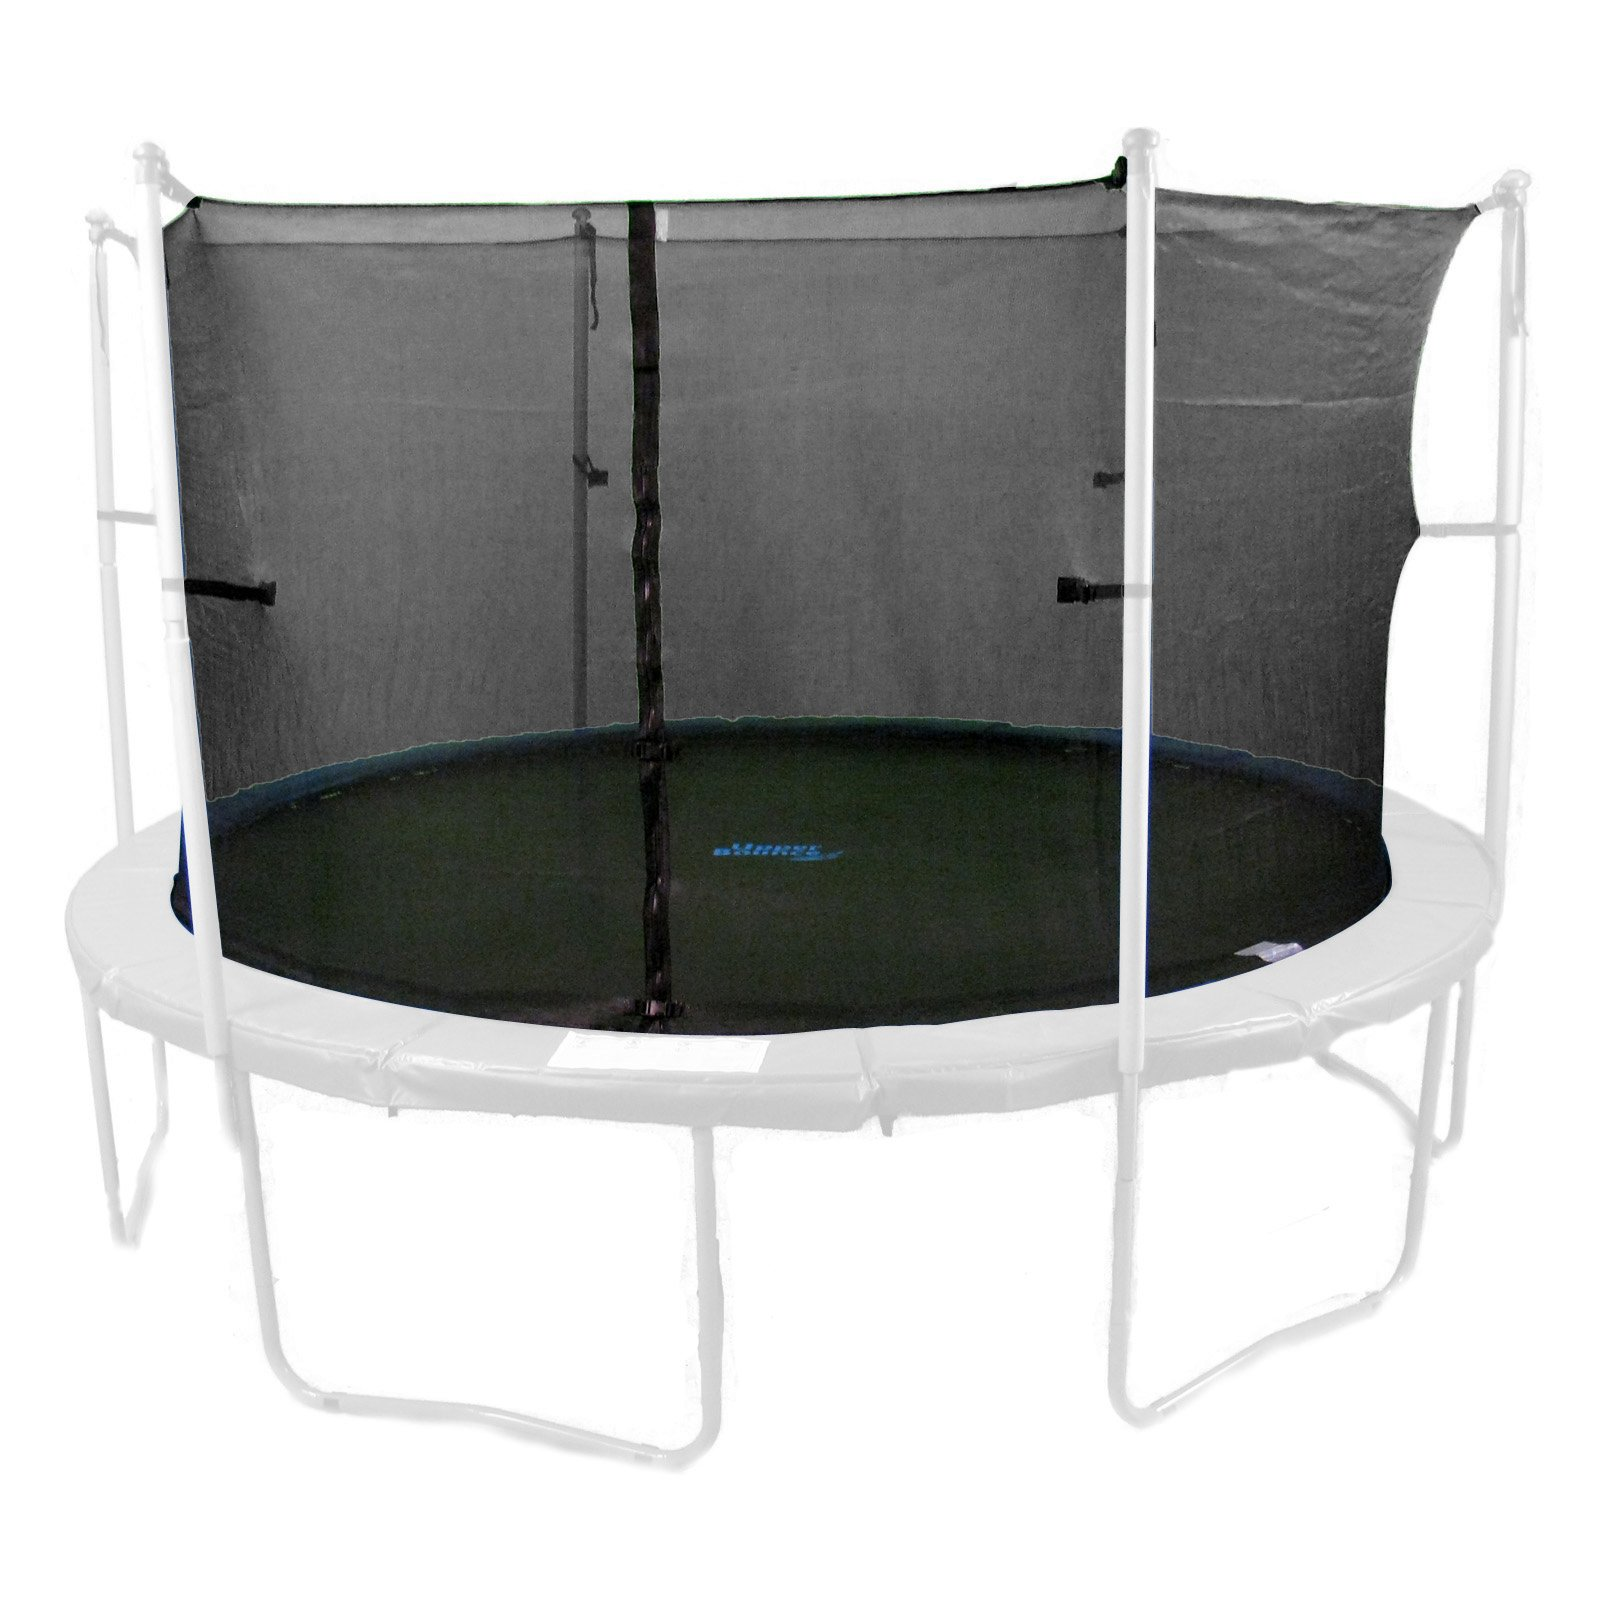 Upper Bounce 14 ft. Trampoline Enclosure Net